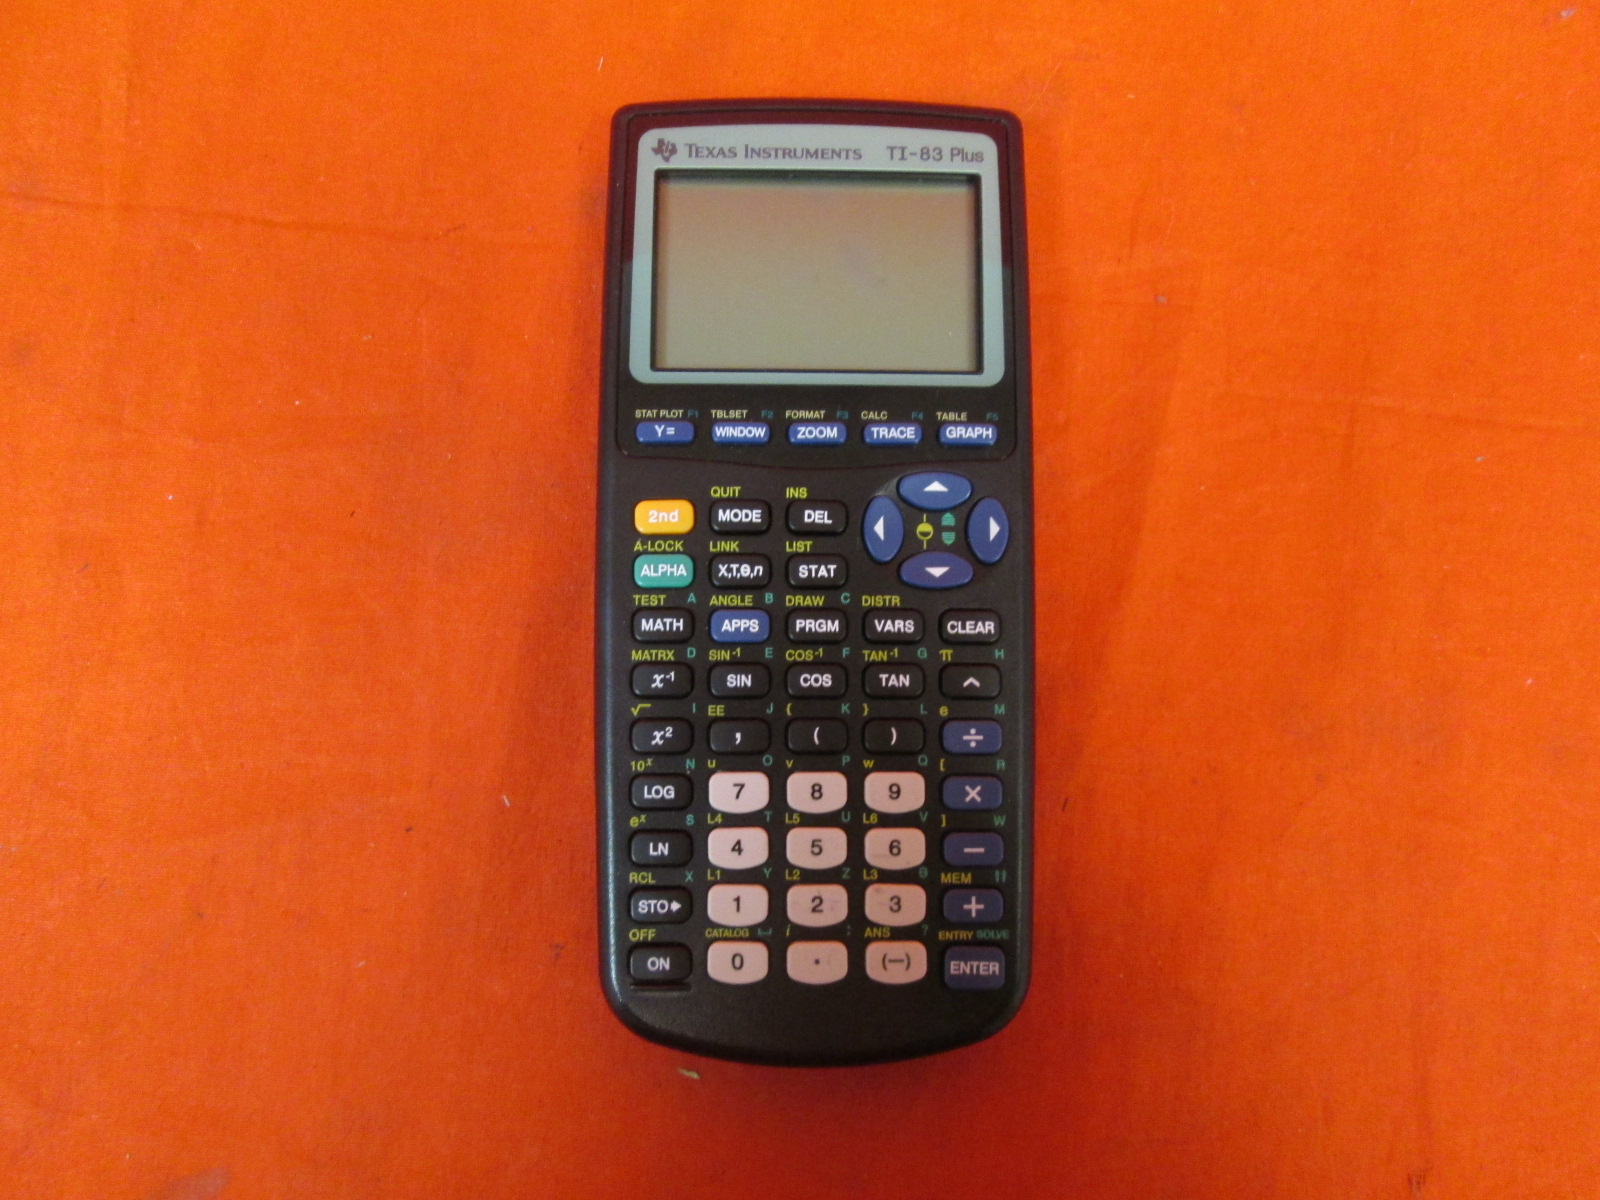 Texas Instruments TI-83 Plus Programmable Graphing Calculator Broken